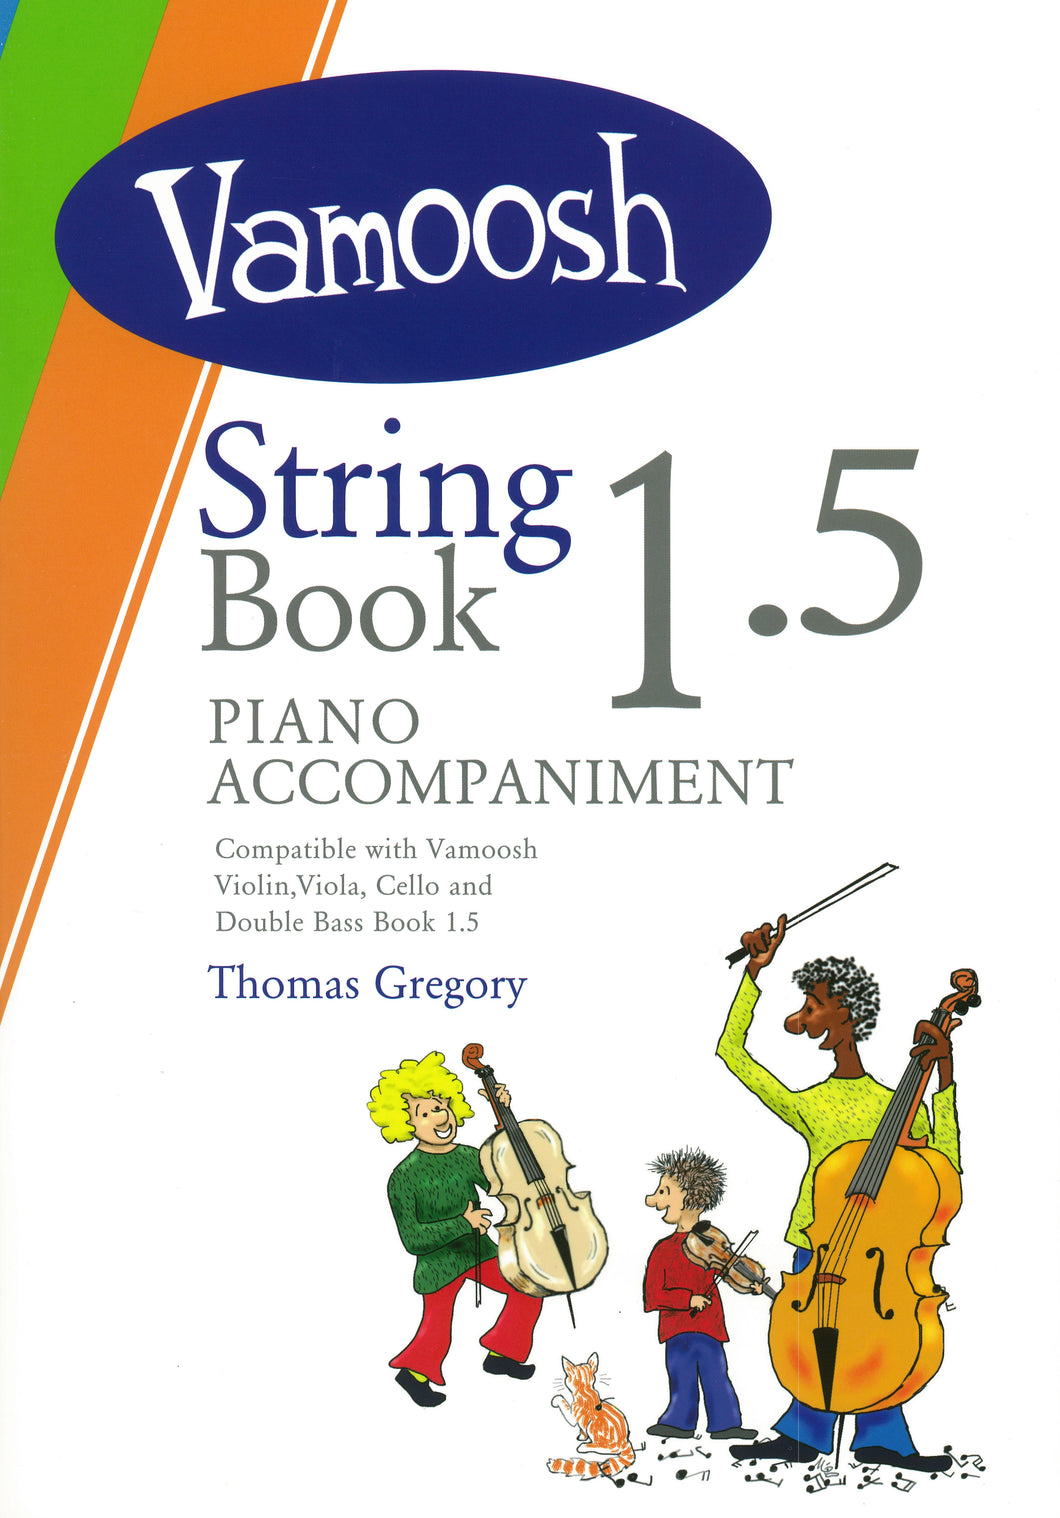 Vamoosh String Book 1.5 Piano Accompaniment